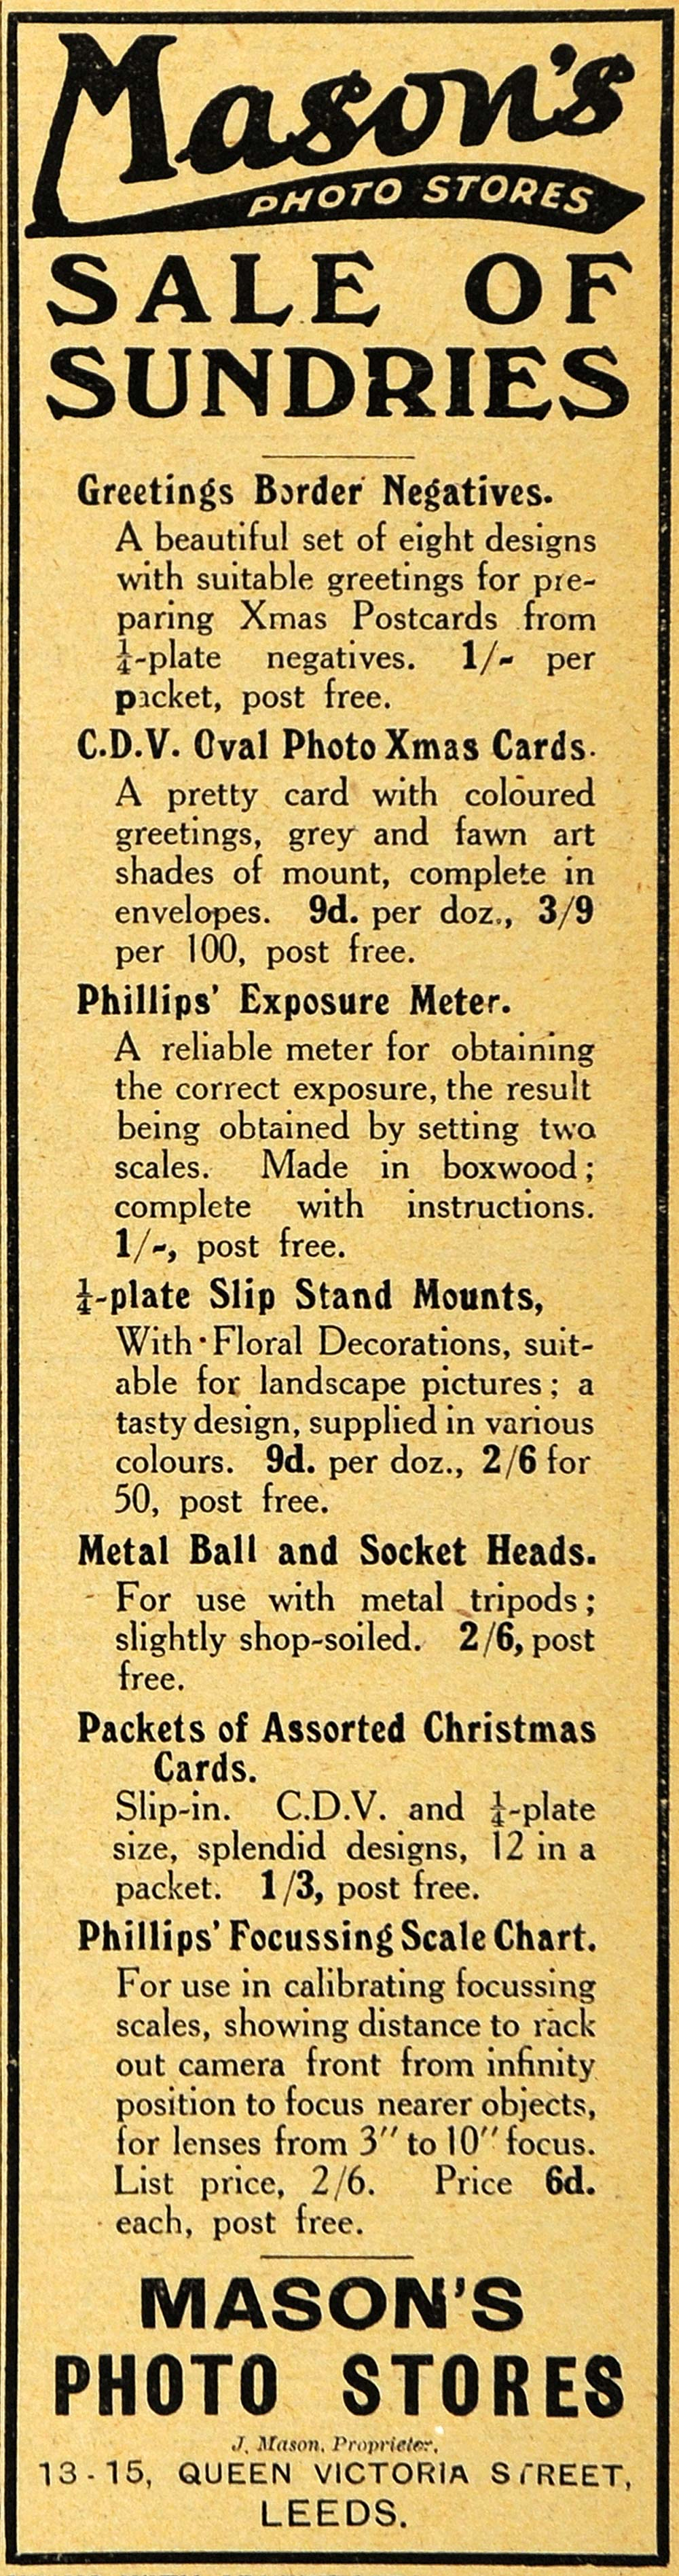 1918 Ad Mason's Sundries Phillips Exposure Meter Photography Leeds England AMP1